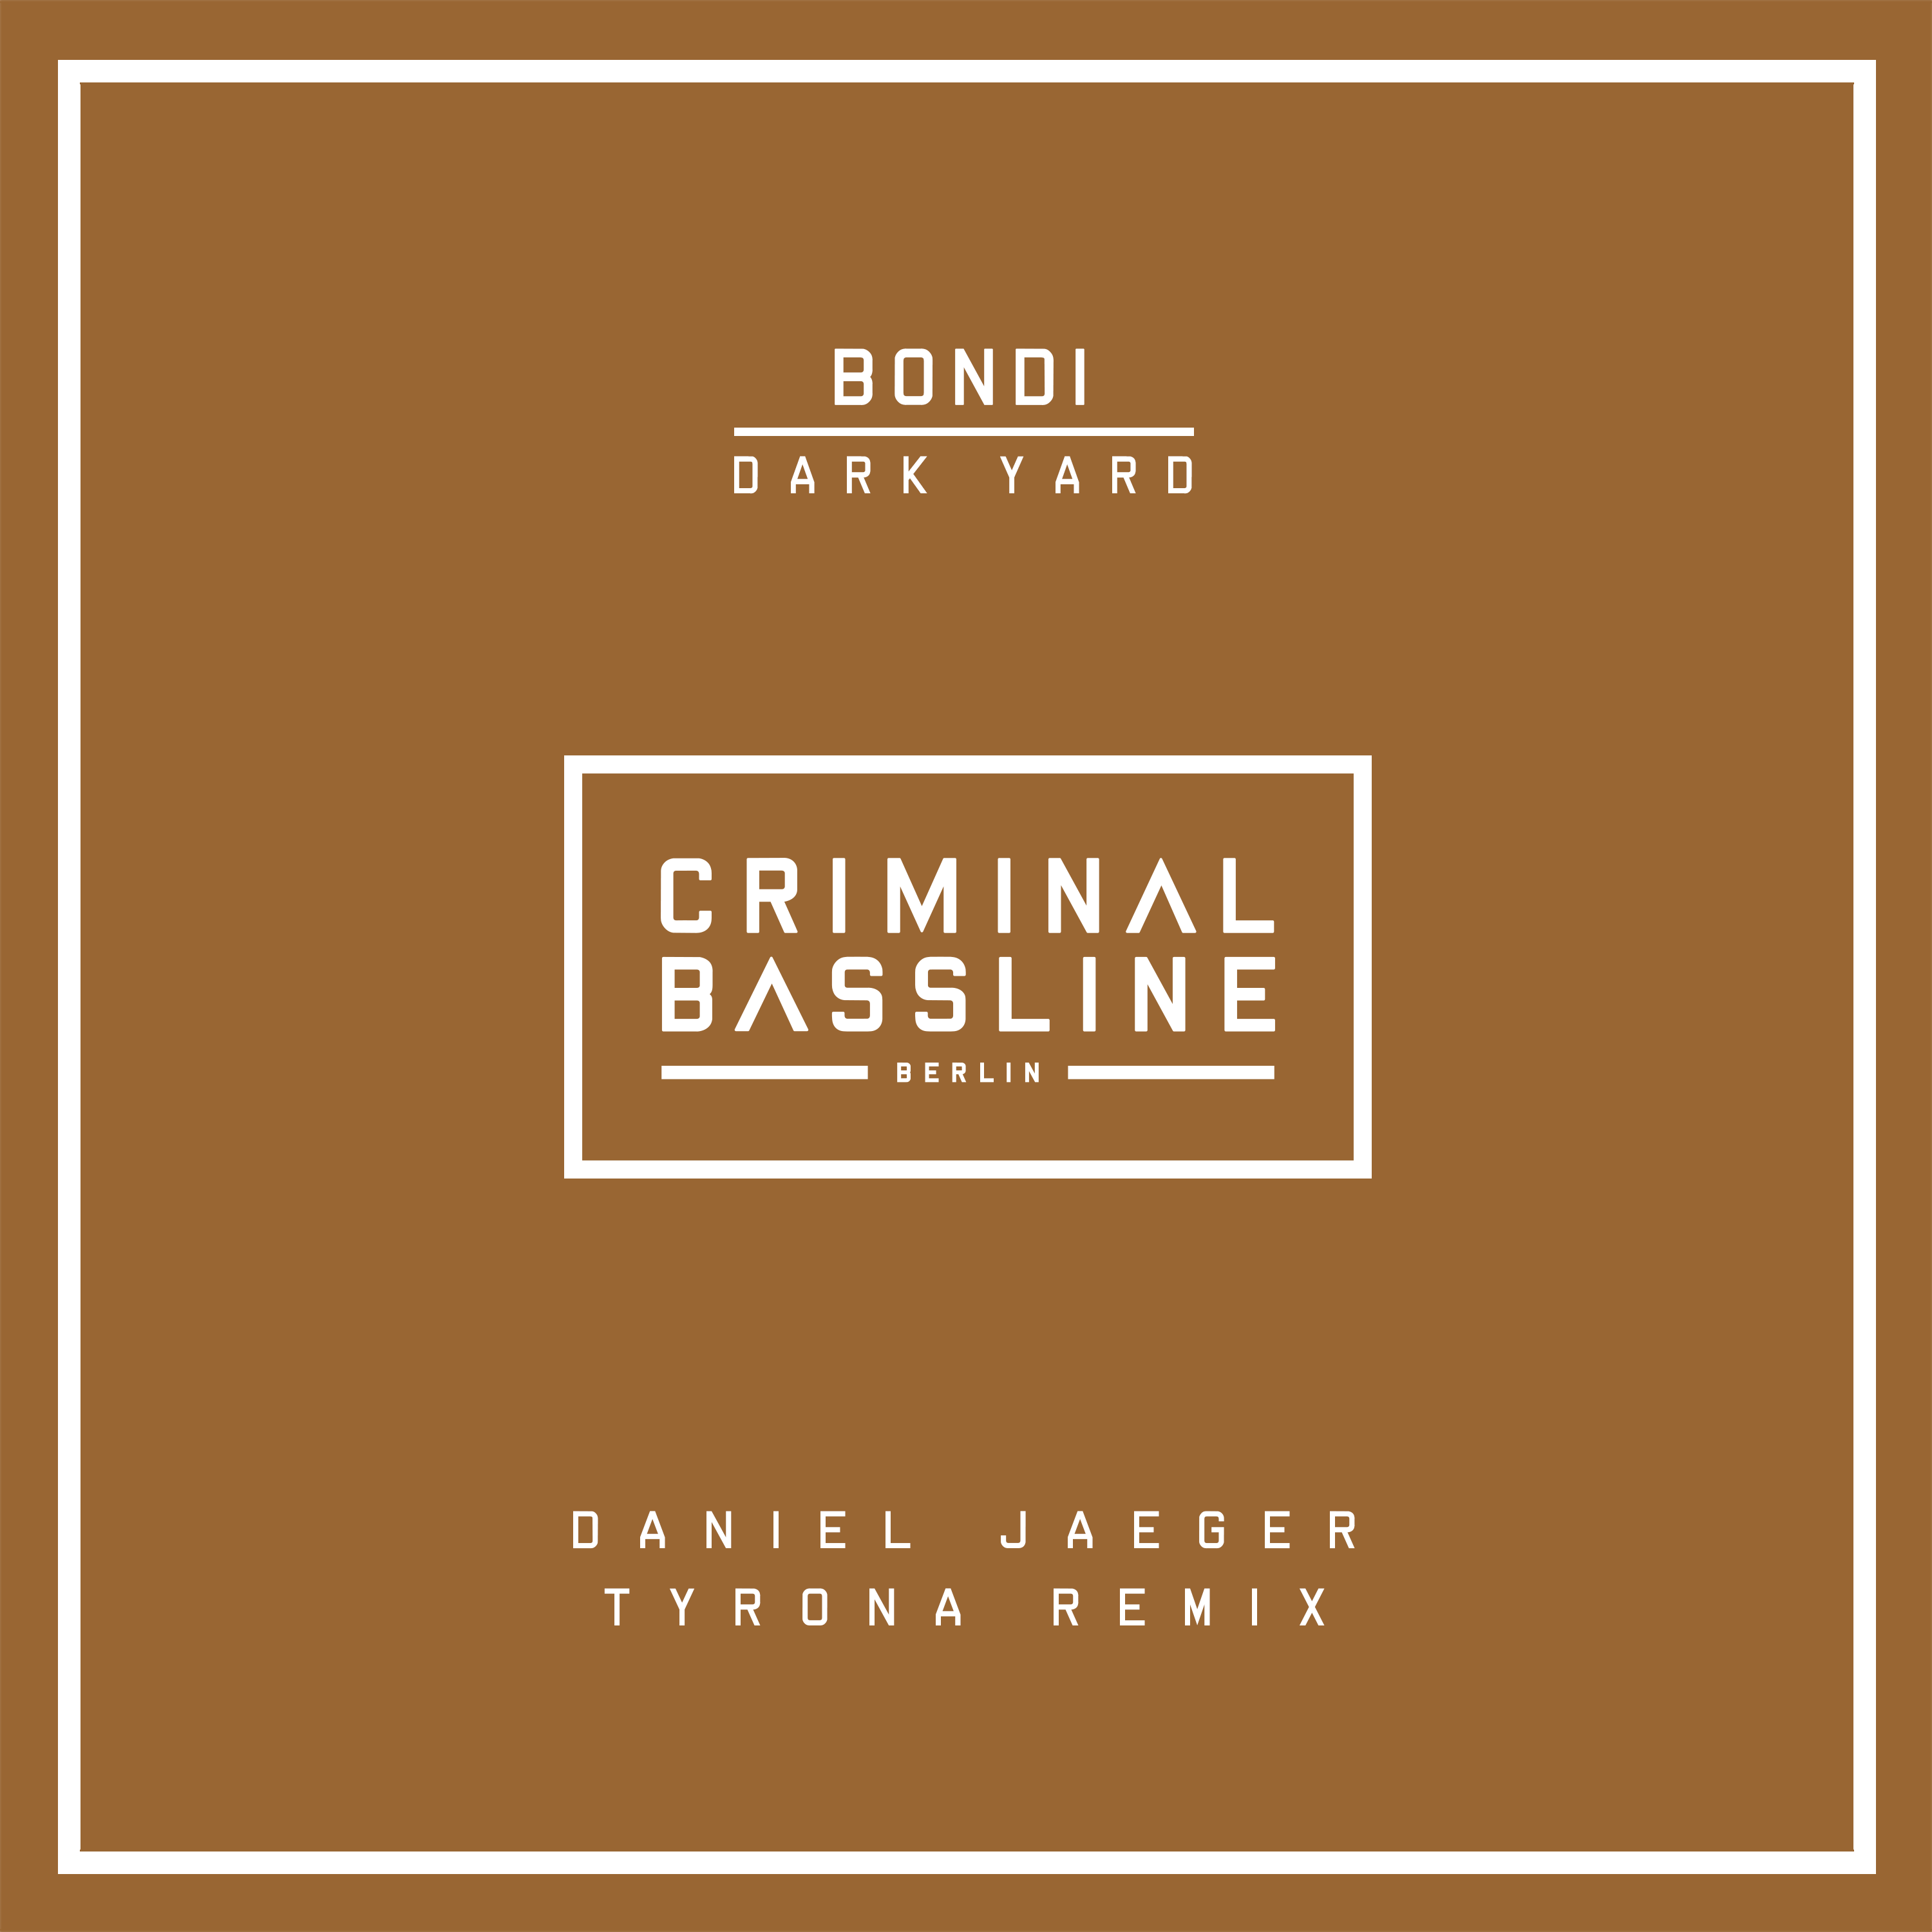 DOWNLOAD: BONDI – Dark Yard (Daniel Jaeger Tyrona Remix)